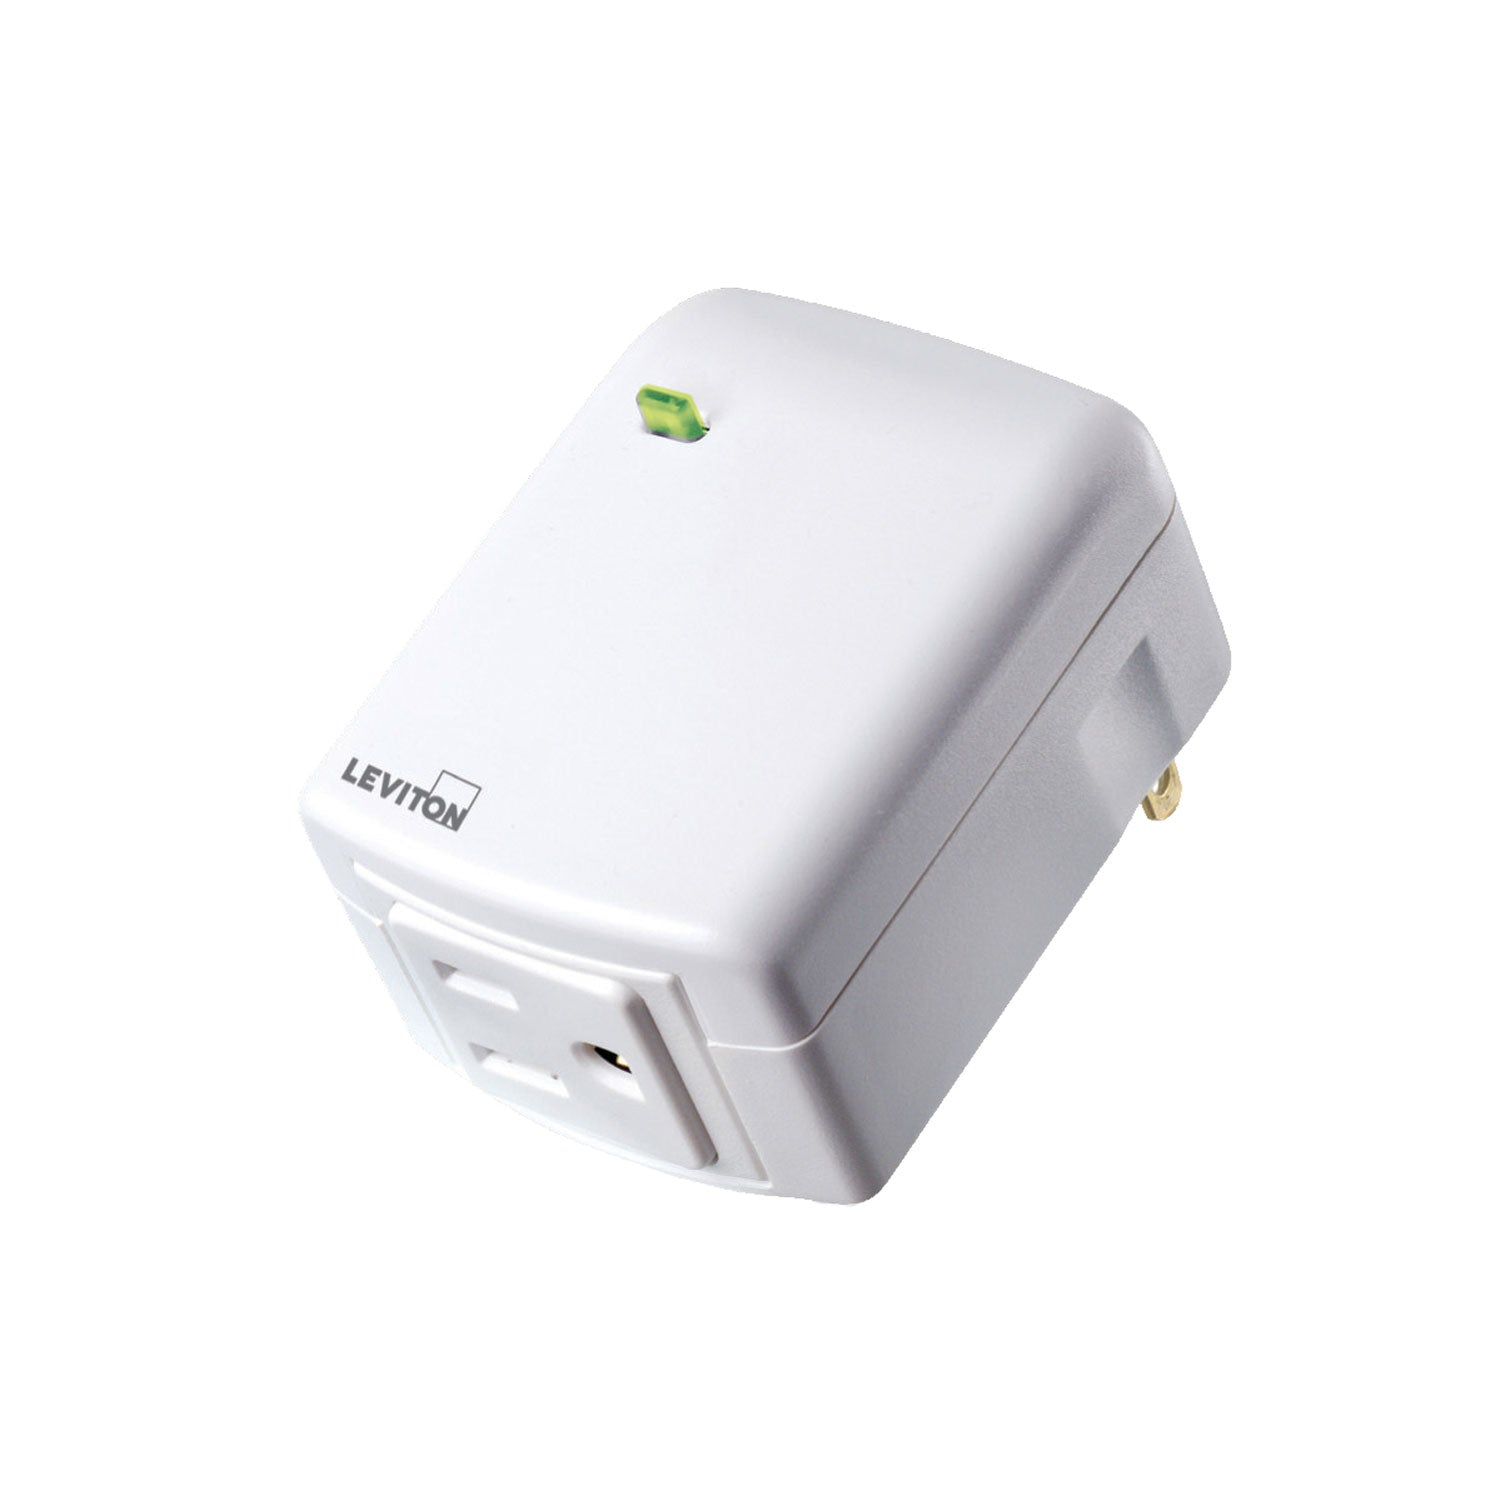 Leviton Decora Smart Plug-In Outlet (for Works with Ring Alarm Security System) - White